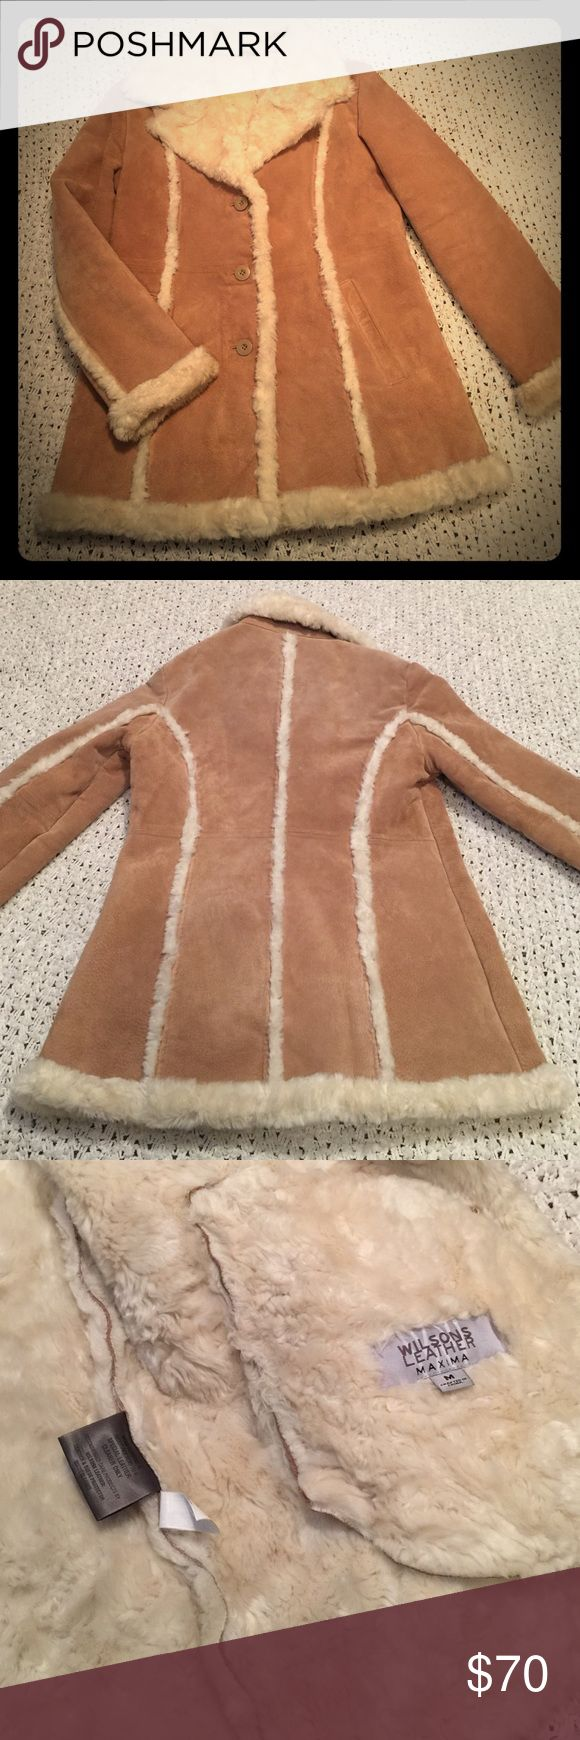 Wilsons Leather Coat Heavy duty super warm coat! Tan leather with fur lining and inside. Size medium. Wilsons Leather Jackets & Coats